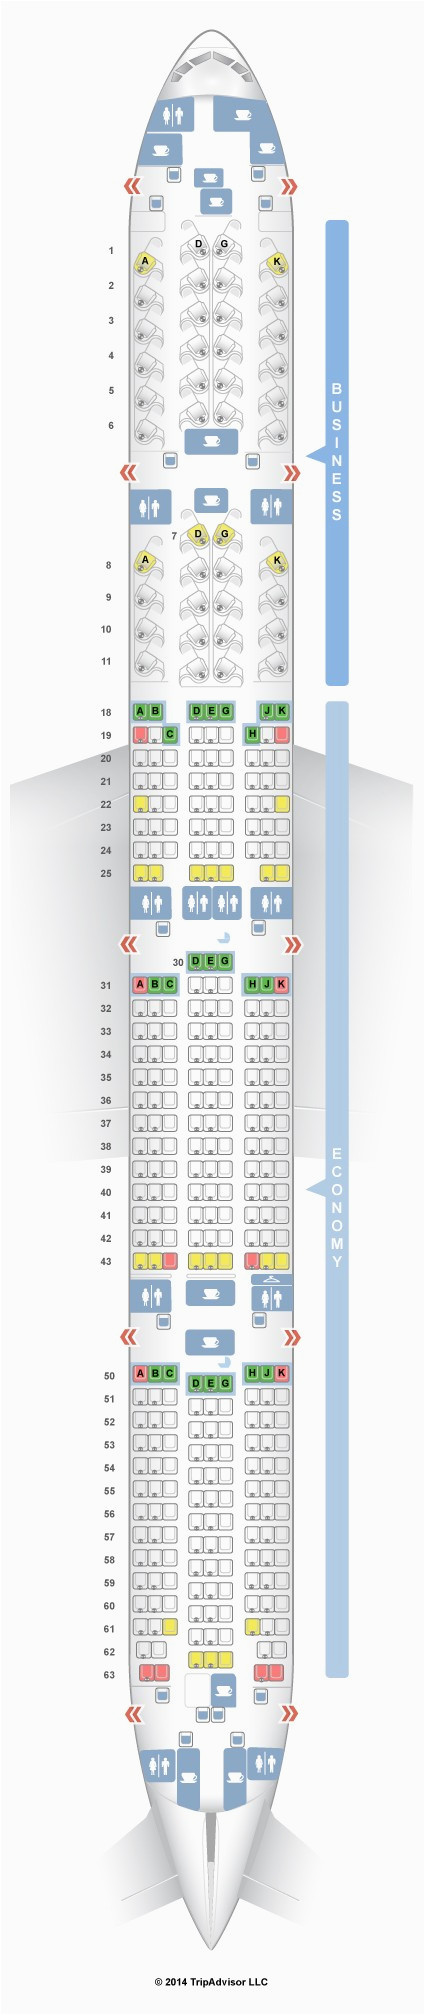 Aircraft 77W Seat Map - The Best and Latest Aircraft 2018